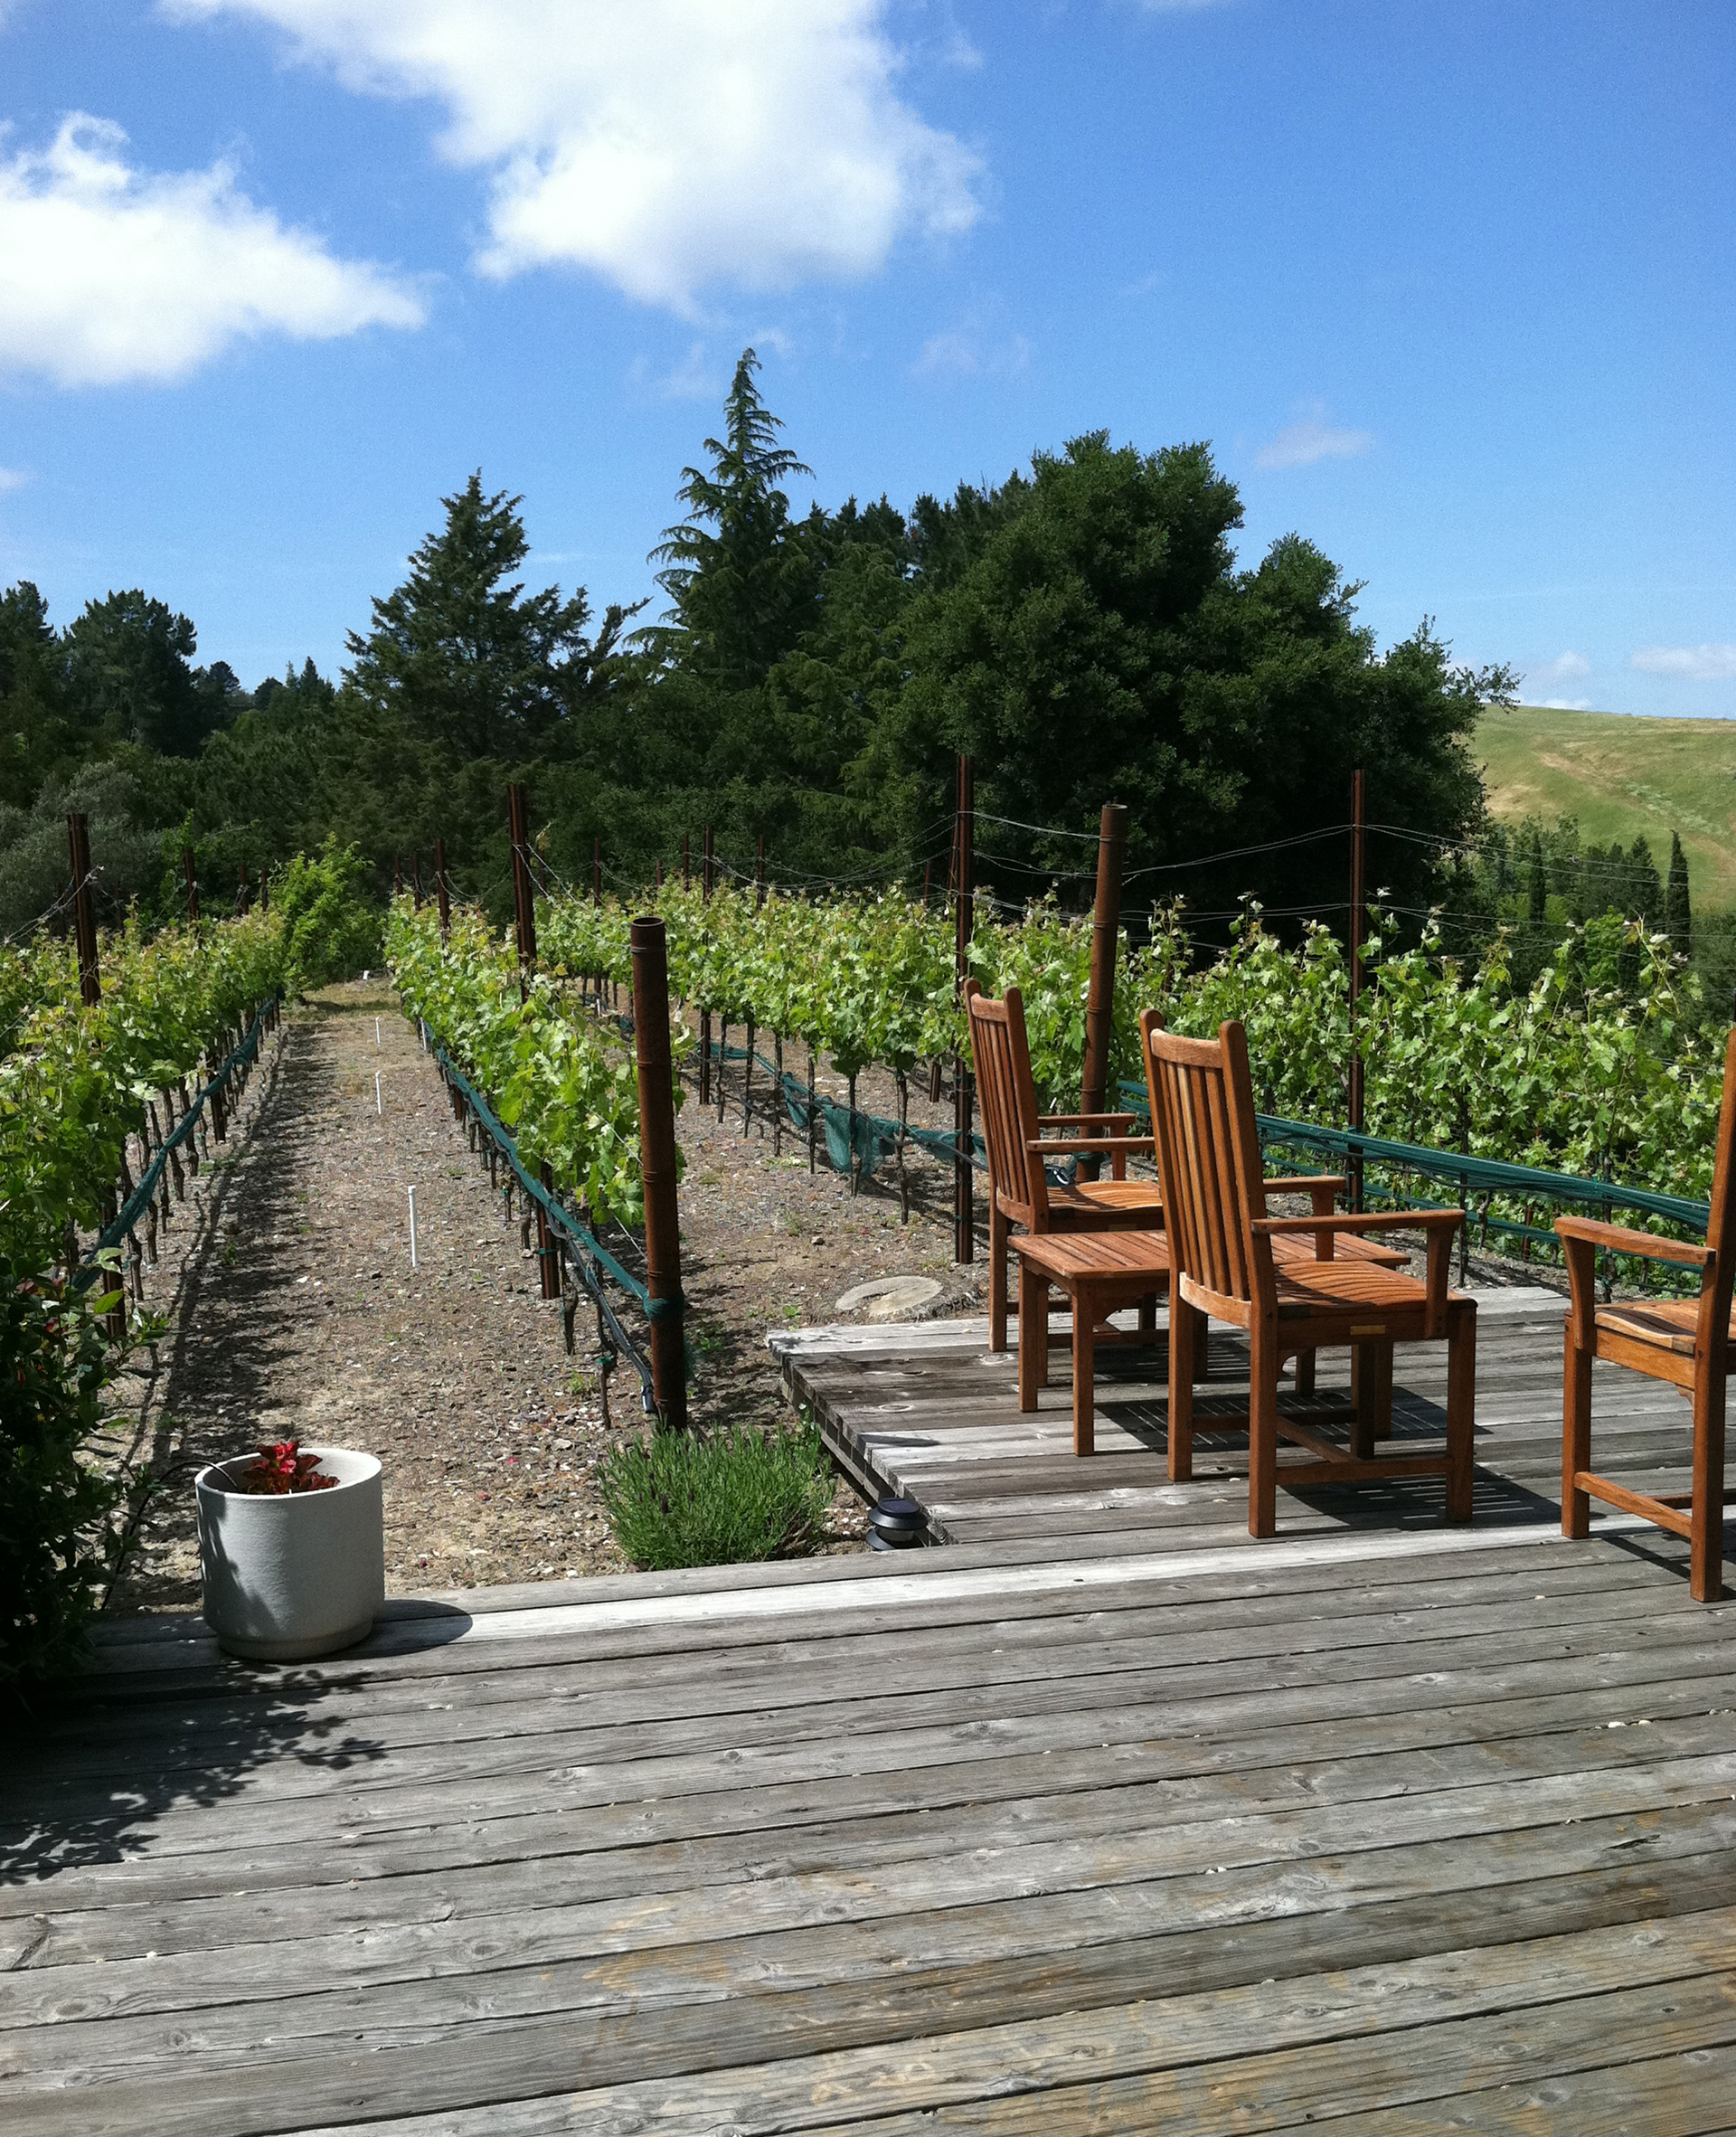 This Lamorinda home vineyard sits next to the deck, where homeowners can admire their orderly rows of cabernet and syrah vines, which grow well in the region.